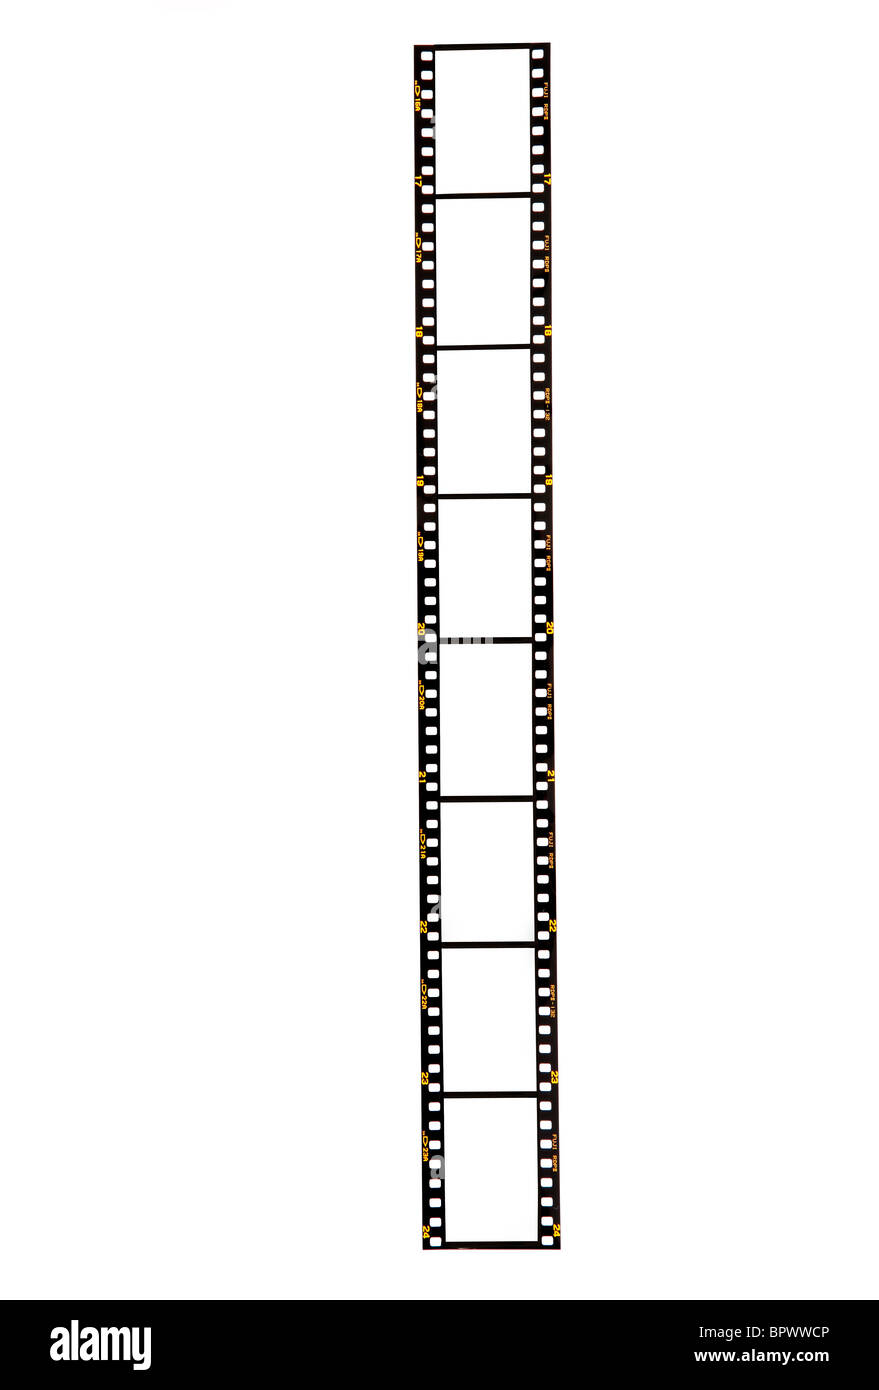 Blank 35mm film strip on a white background ready for your images to be inserted. Fuji, pre-digital from 1980s/1990s. Stock Photo